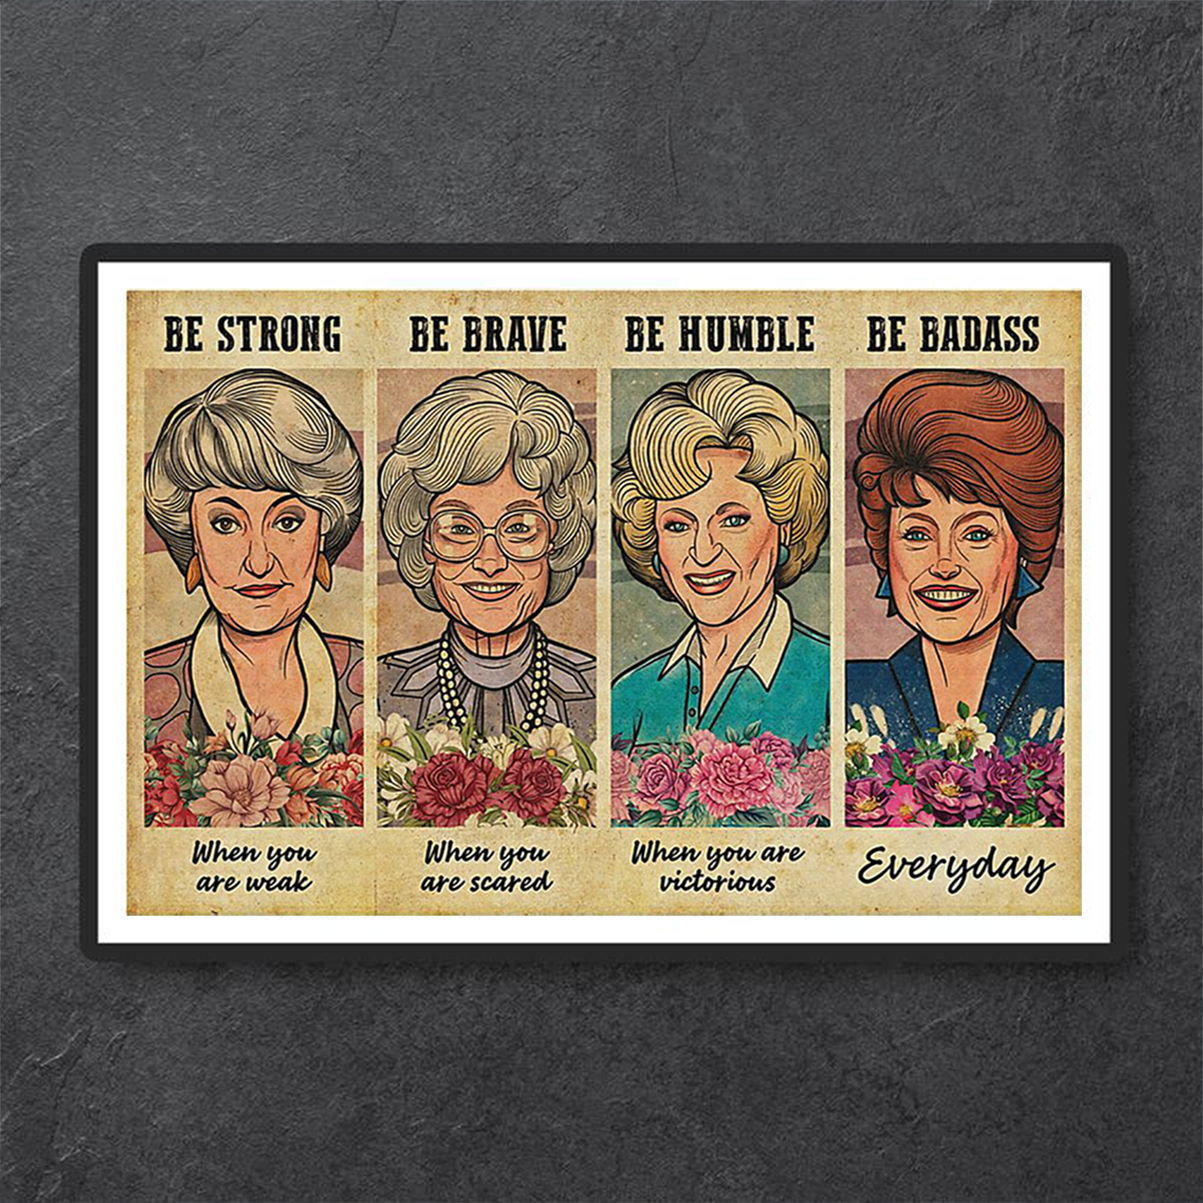 The Golden Girls be strong be brave be humble be badass poster A1